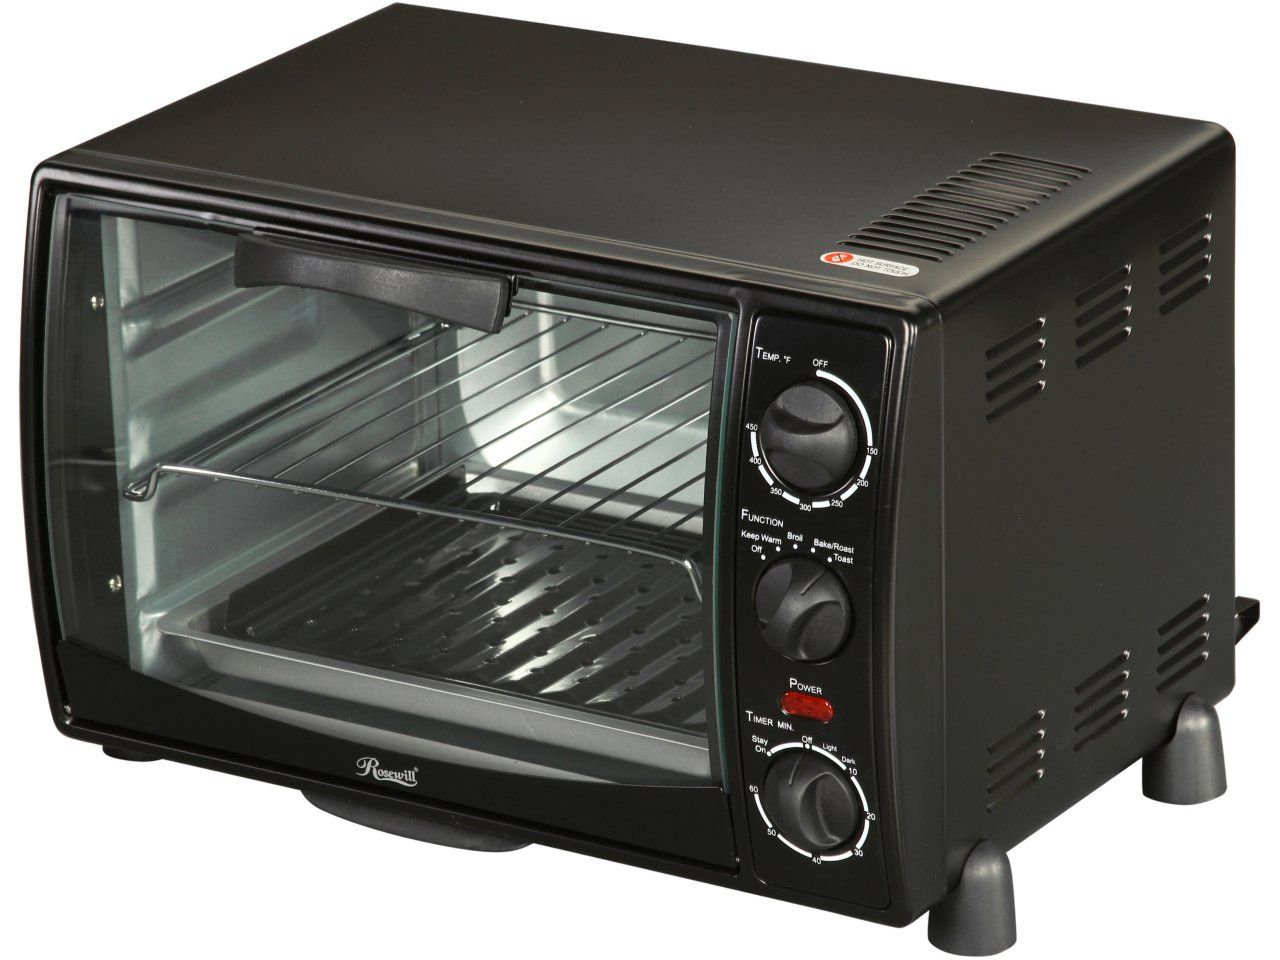 Newegg Rosewill Rhto 13001 6 Slice Black Toaster Oven Broiler With